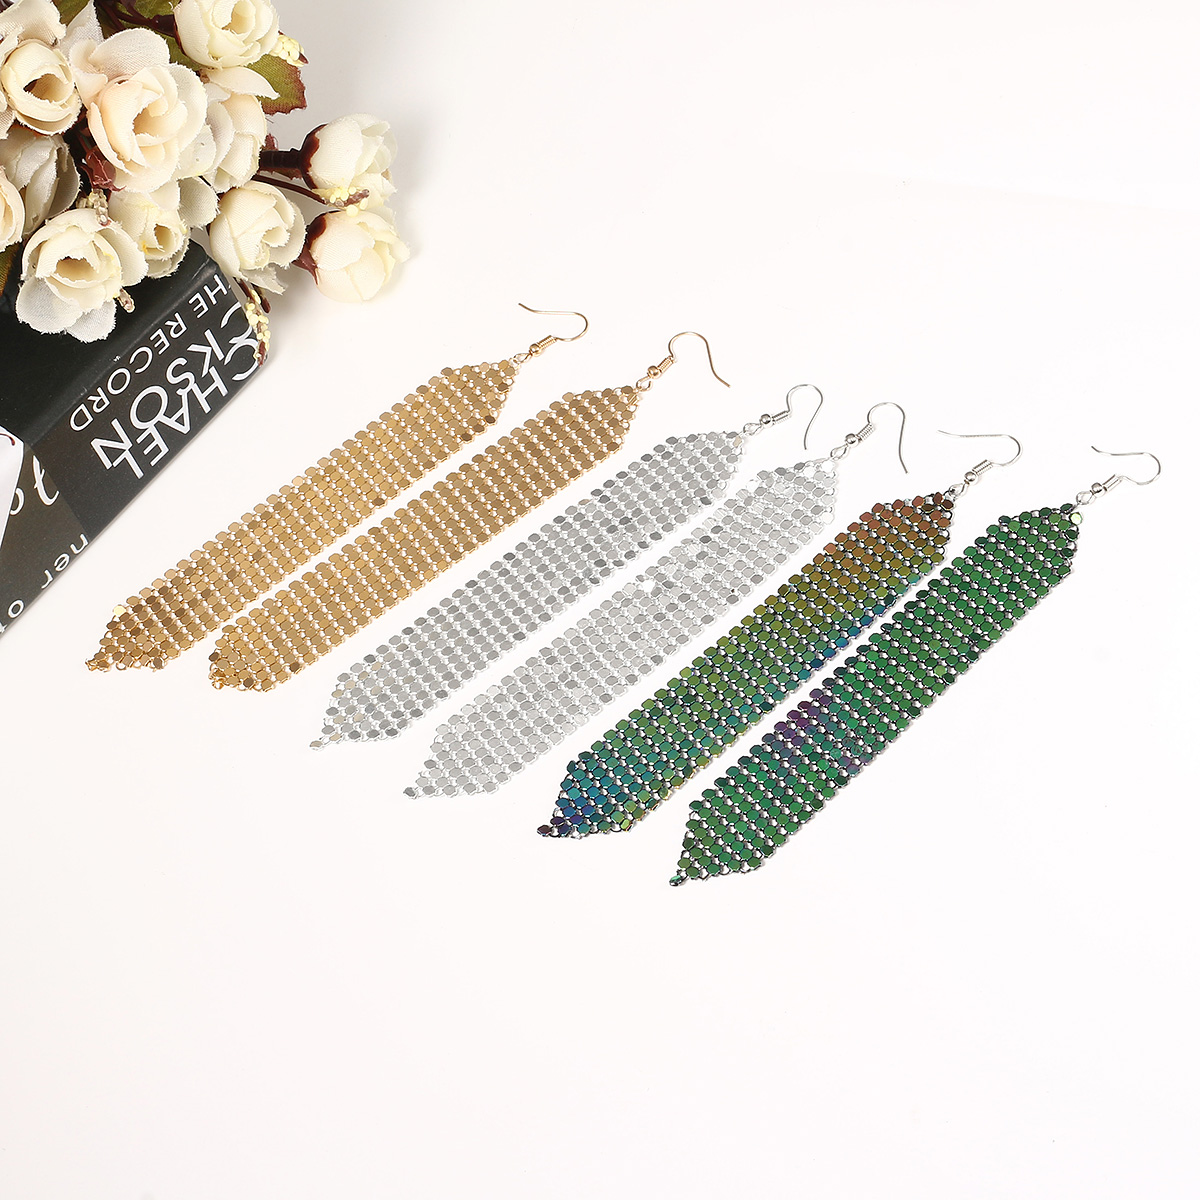 Tassels Long Earrings Sequins Geometric Drop Fashion Jewelry for Women